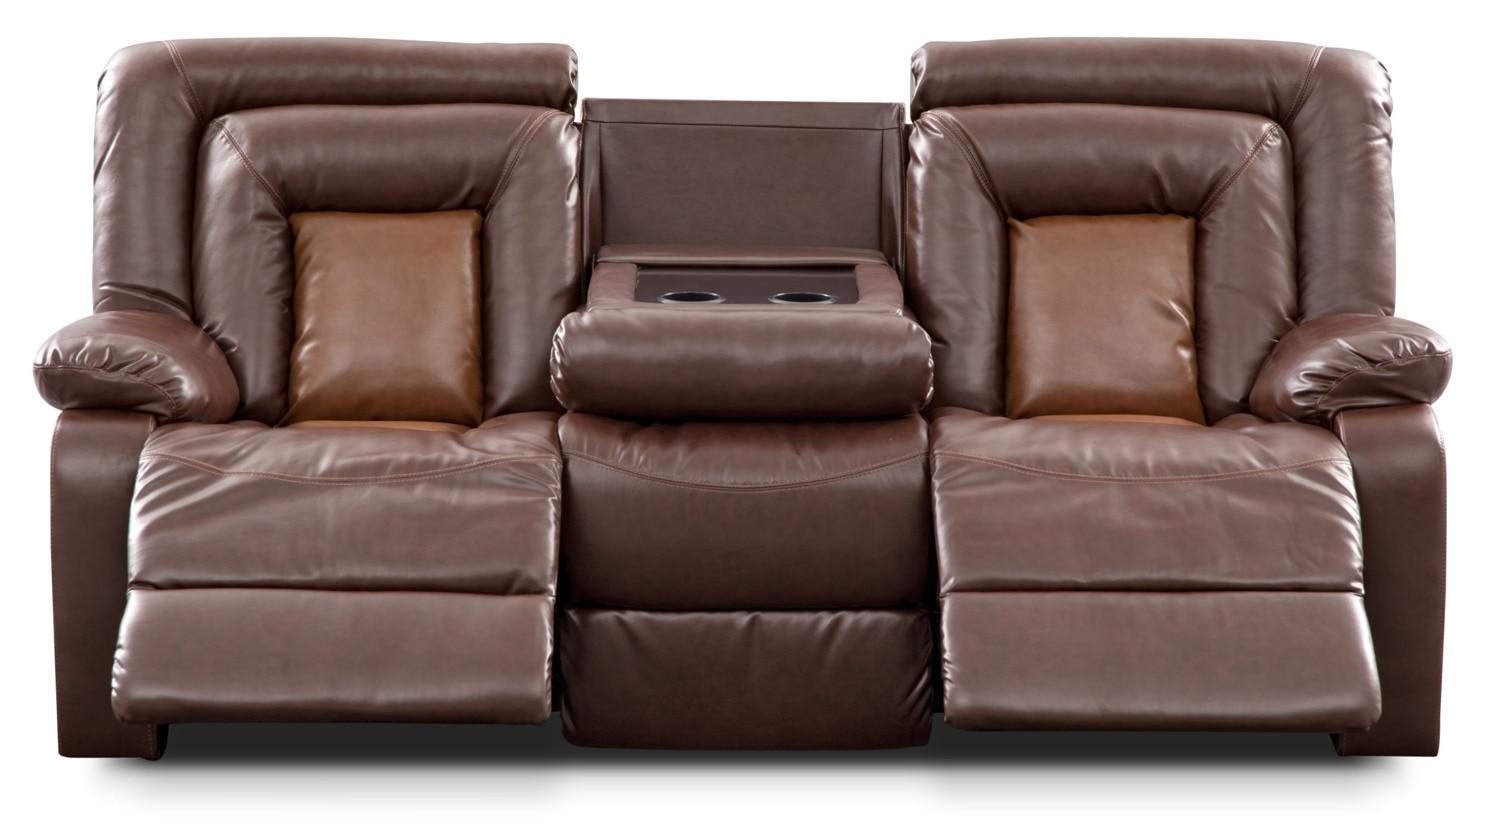 20 best ideas sofas with consoles sofa ideas for Sofa console